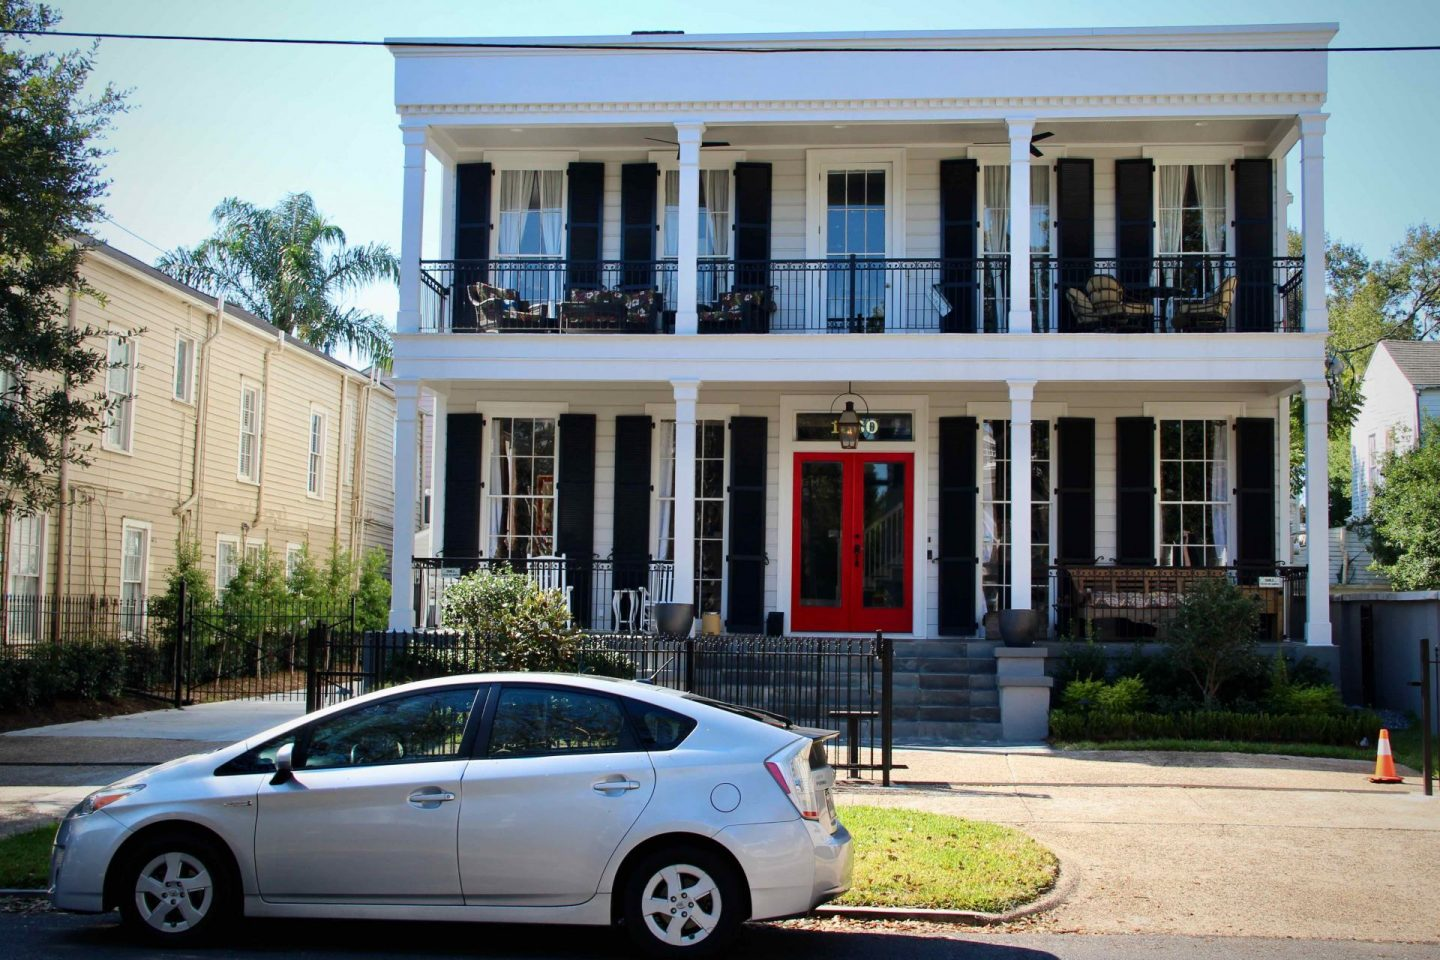 Garden District | New Orleans Travel Guide | The Spectacular Adventurer